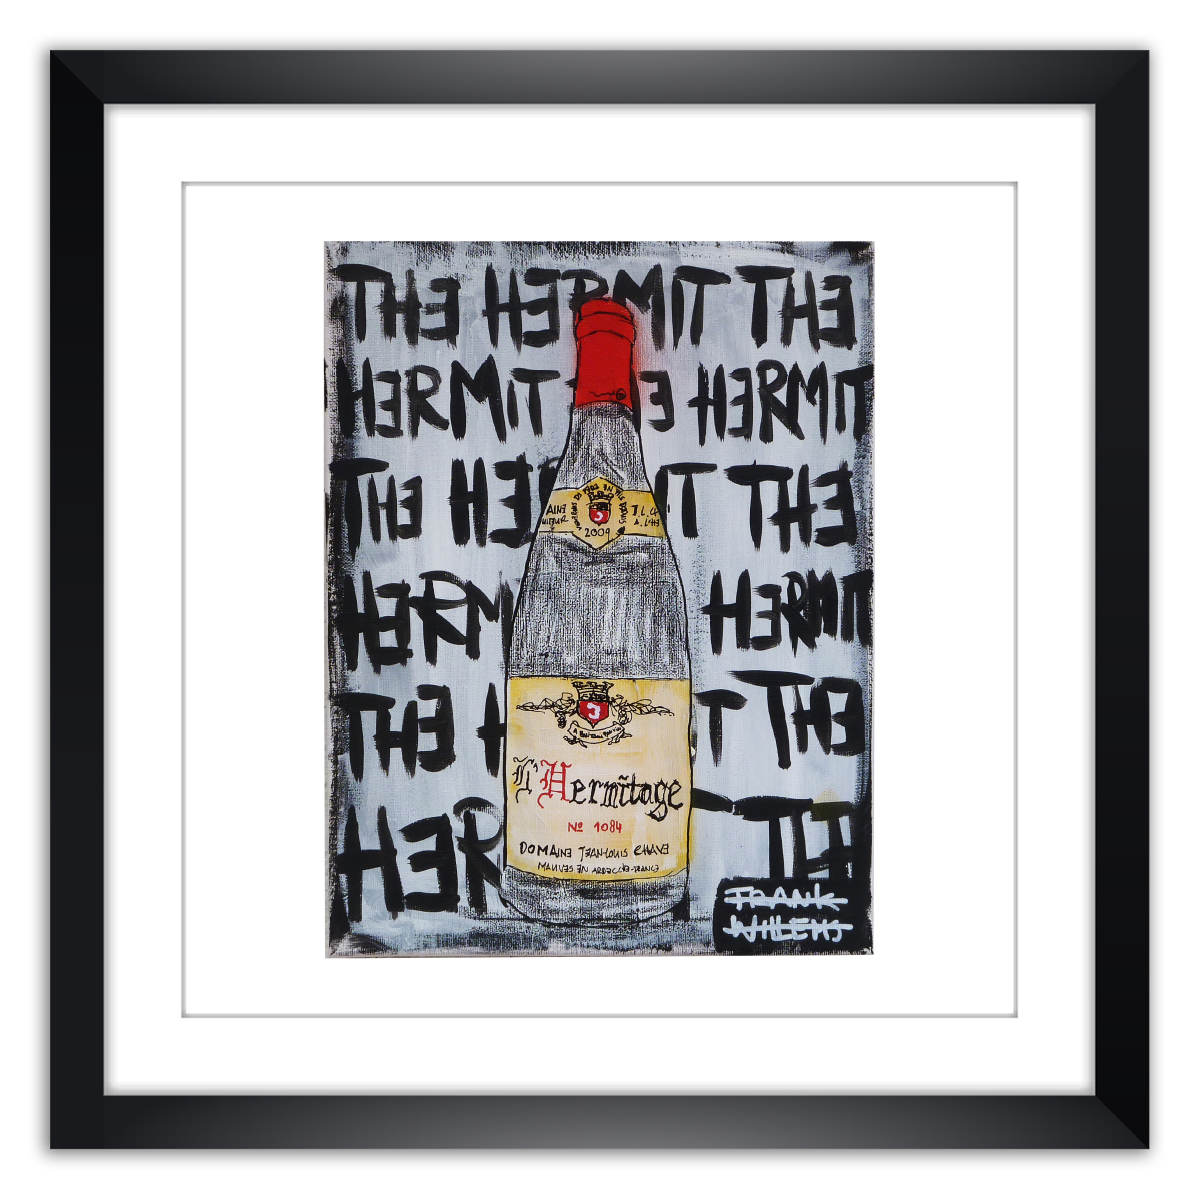 Limited prints -L'HERMITAGE - THE HERMIT framed - Frank Willems